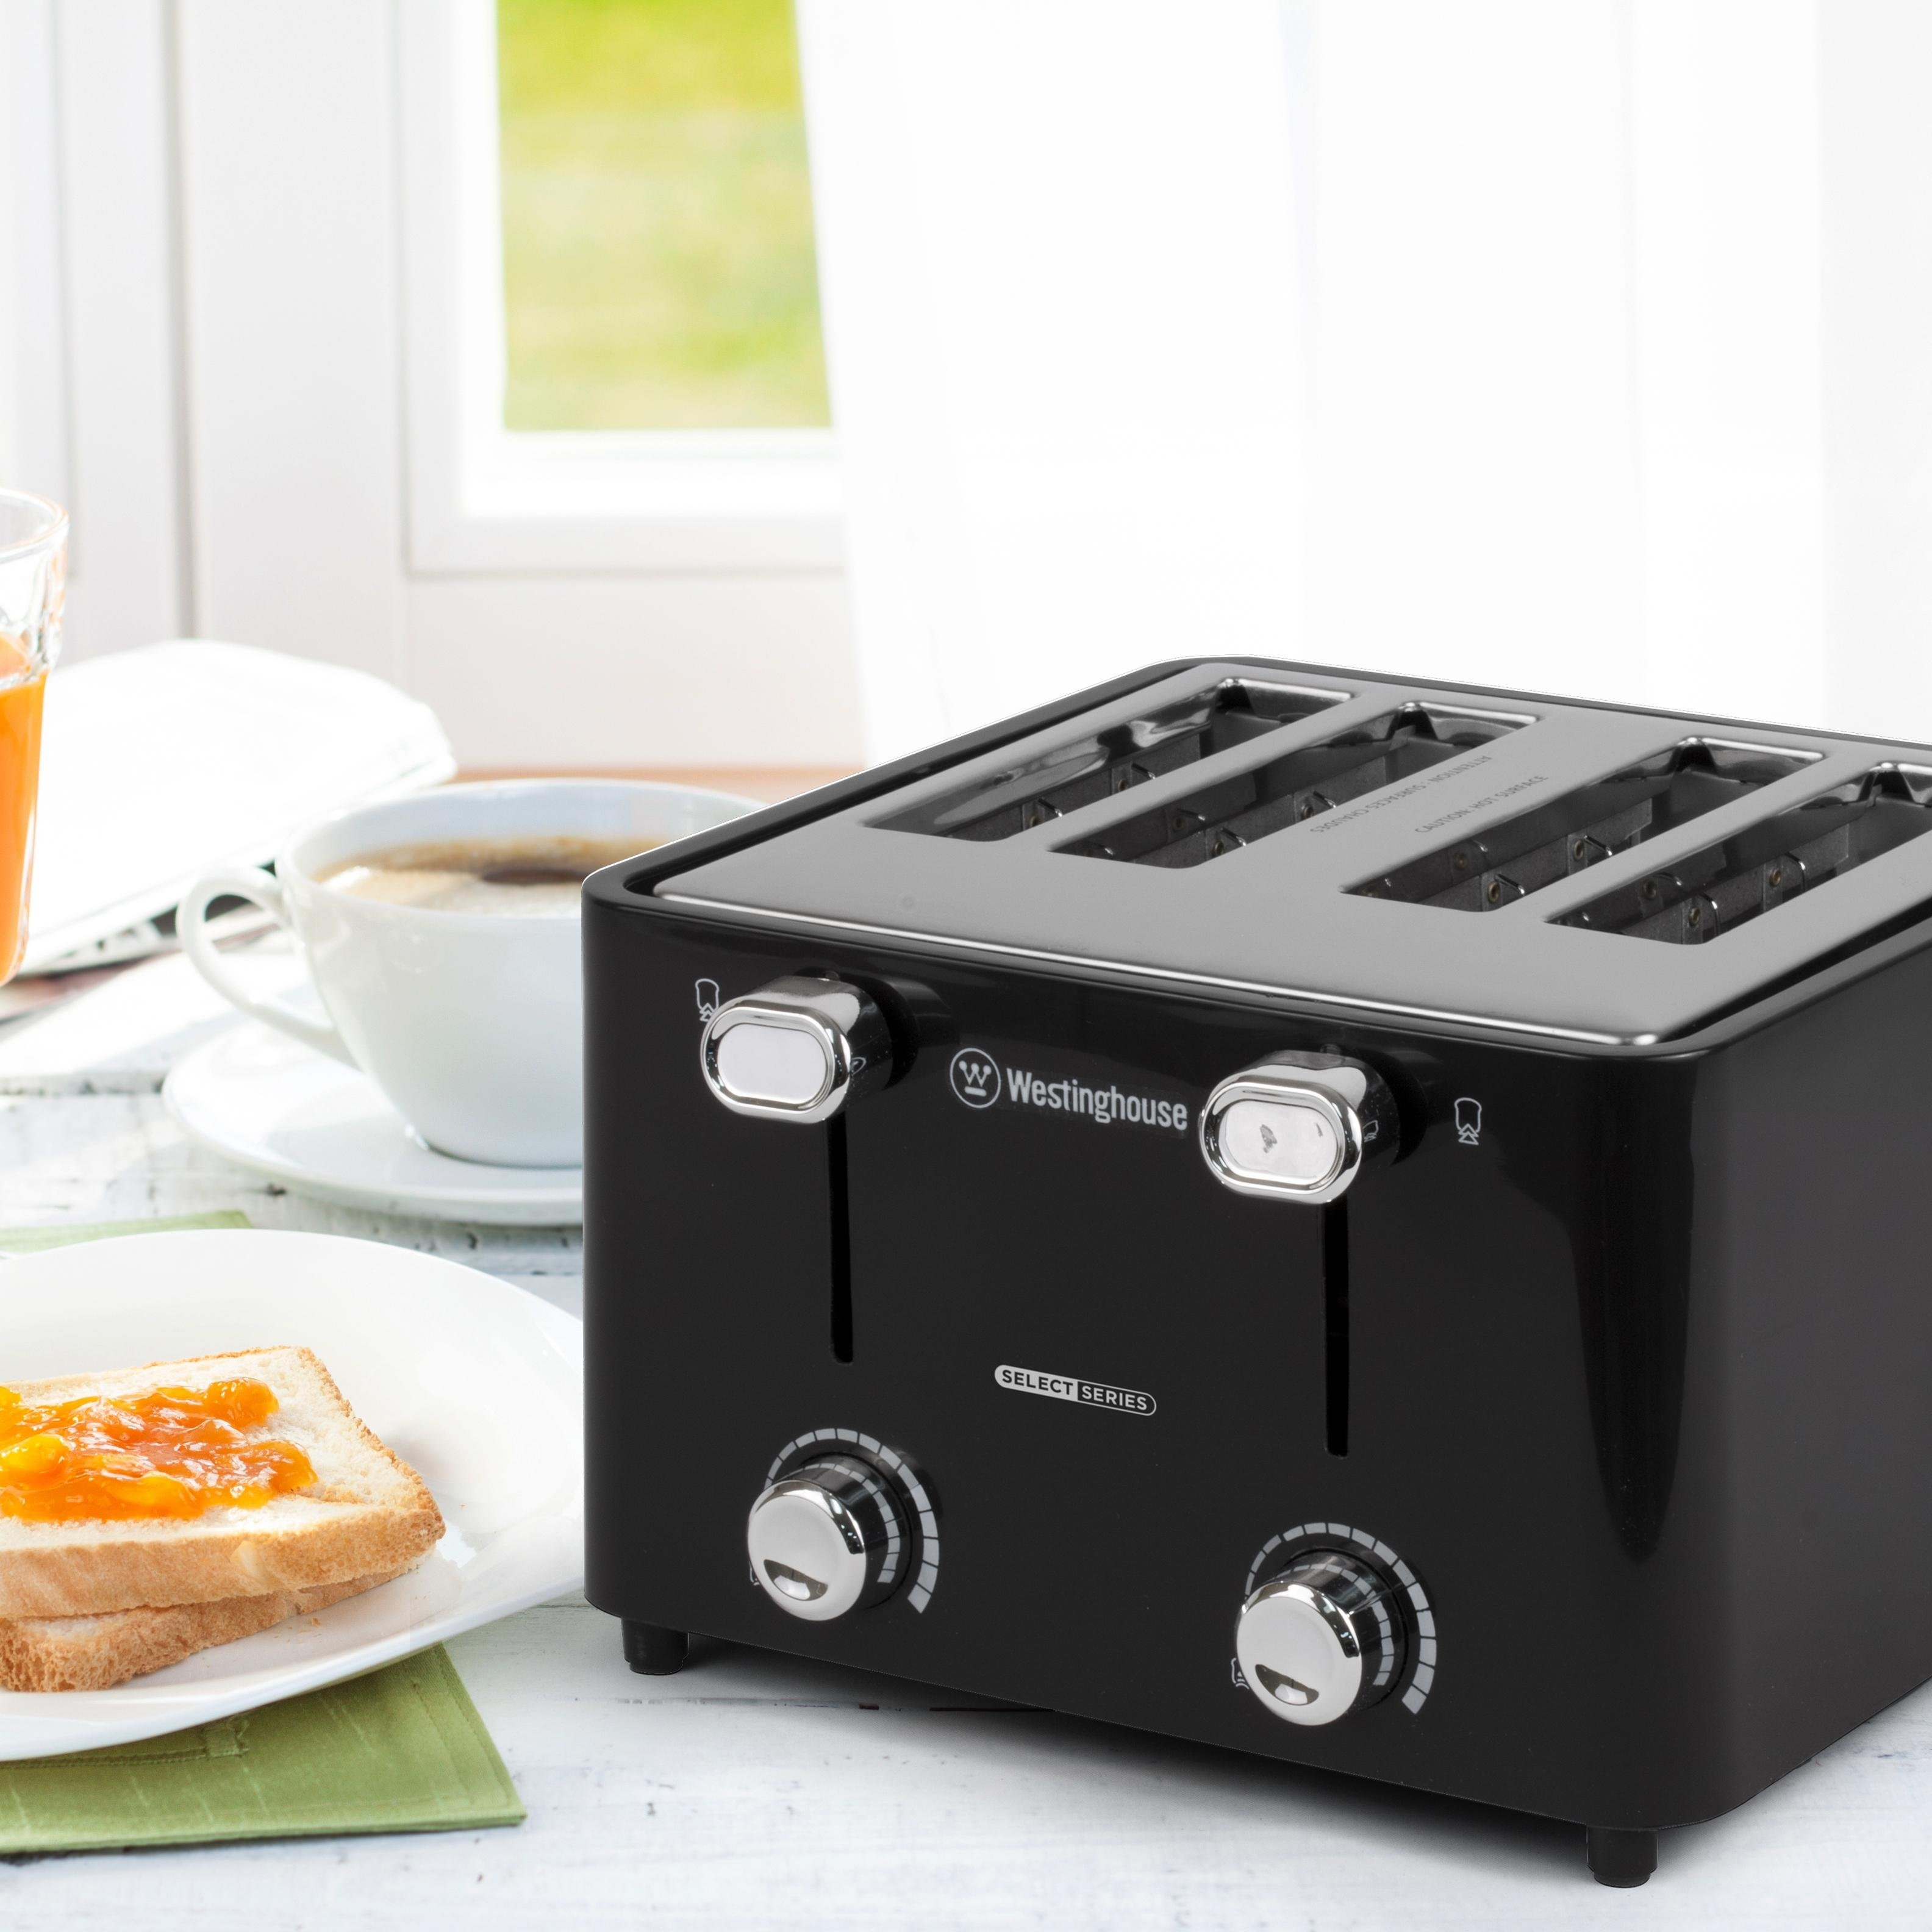 Westinghouse wt44ba select series 4 slice cool - Cool touch exterior convection toaster oven ...